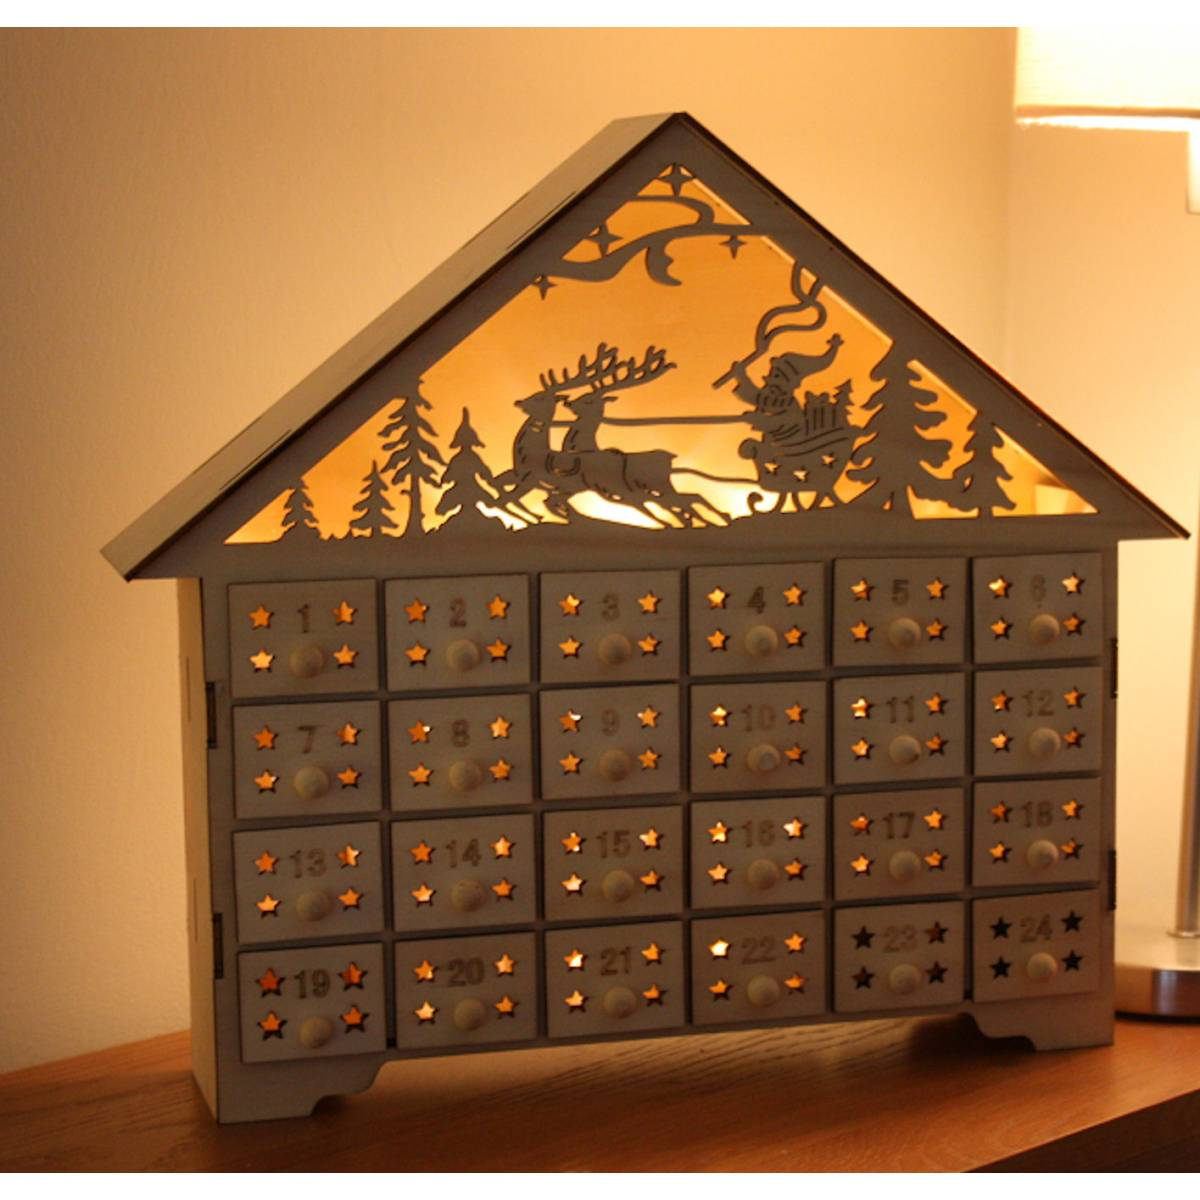 Buy Natural Wood Fretwork Light Up House from Gifted Penguin